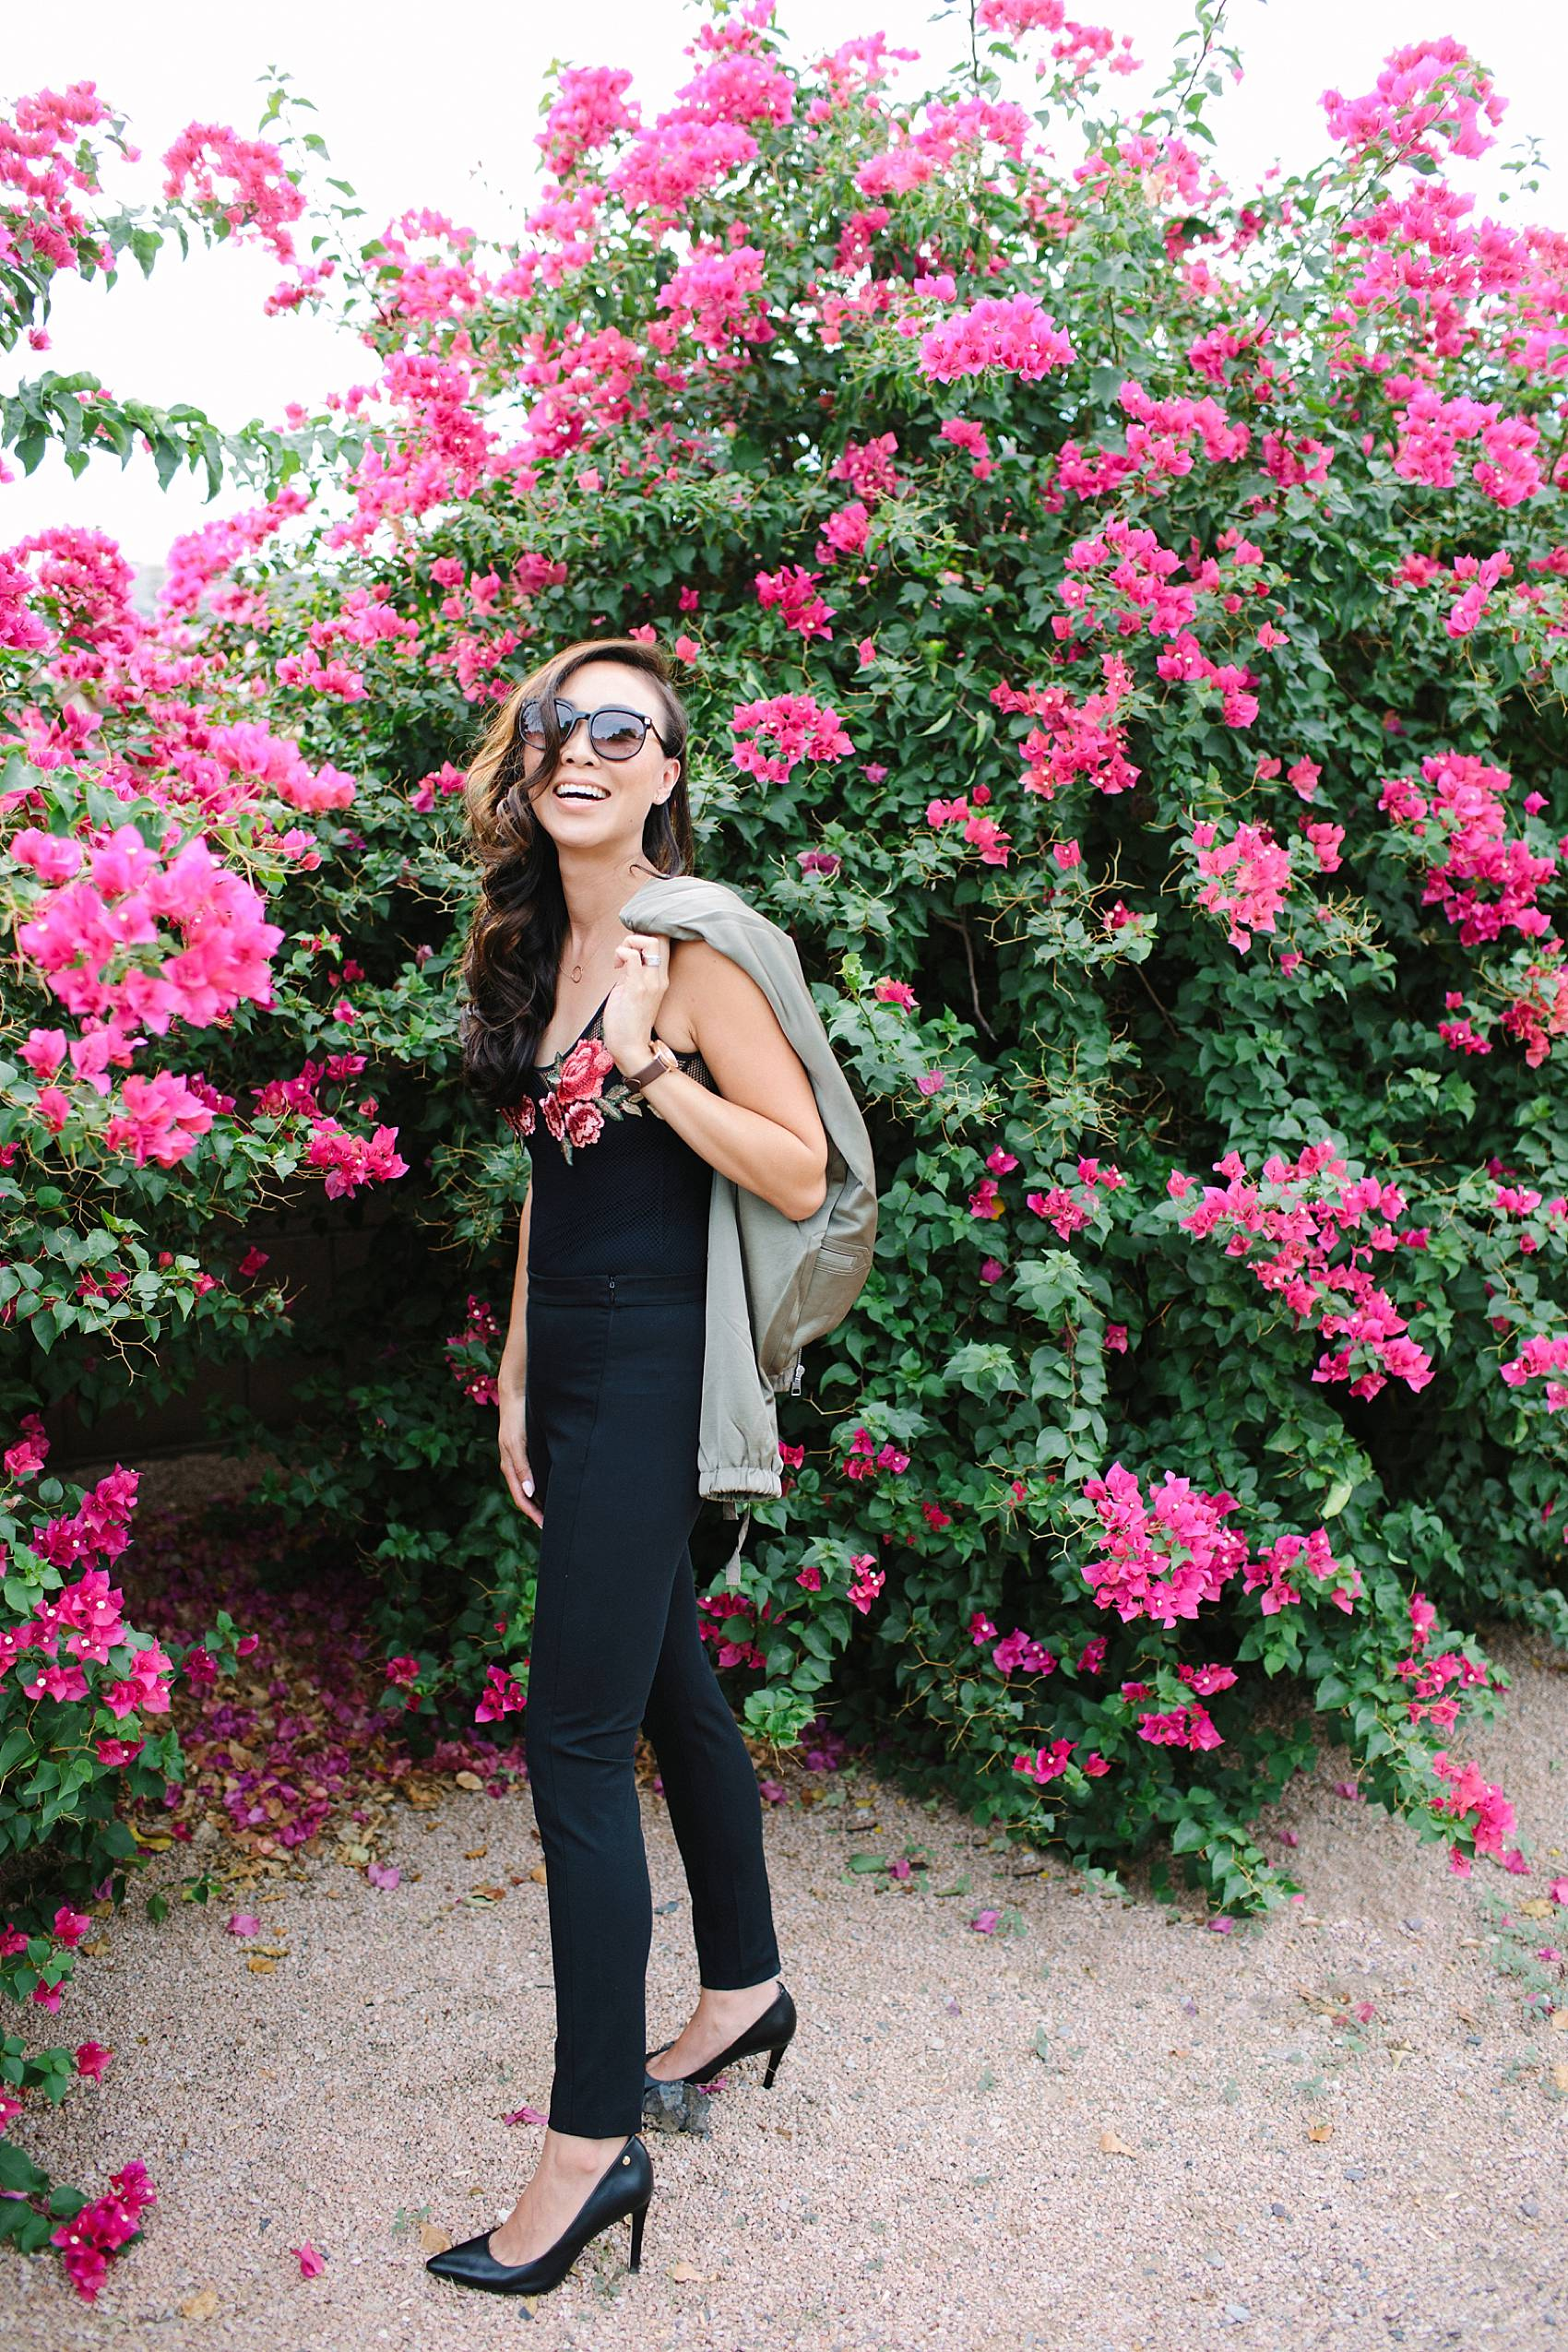 diana elizabeth lifestyle blogger in black devon-fit bi-stretch leggings and over shoulder holding satin bomber jacket by banana republic standing in front of pink bougevvilla plants wildfox sunglasses